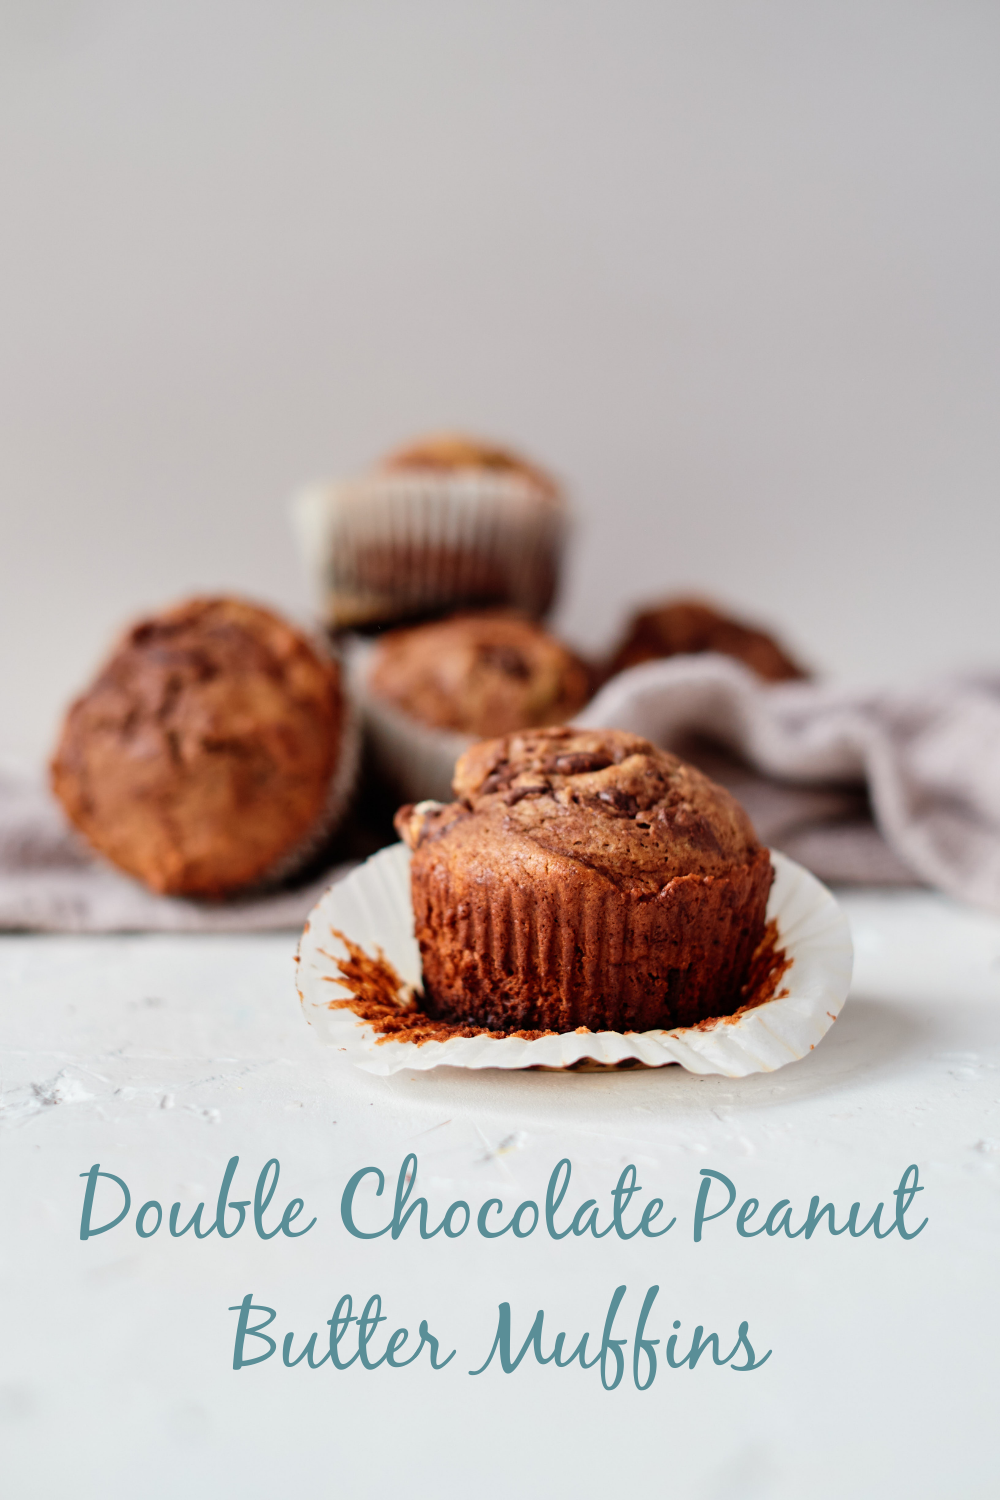 Delicious, easy, and the ultimate muffin indulgence, these Double Chocolate Peanut Butter Muffins are the perfect option for a quick breakfast or afternoon snack!